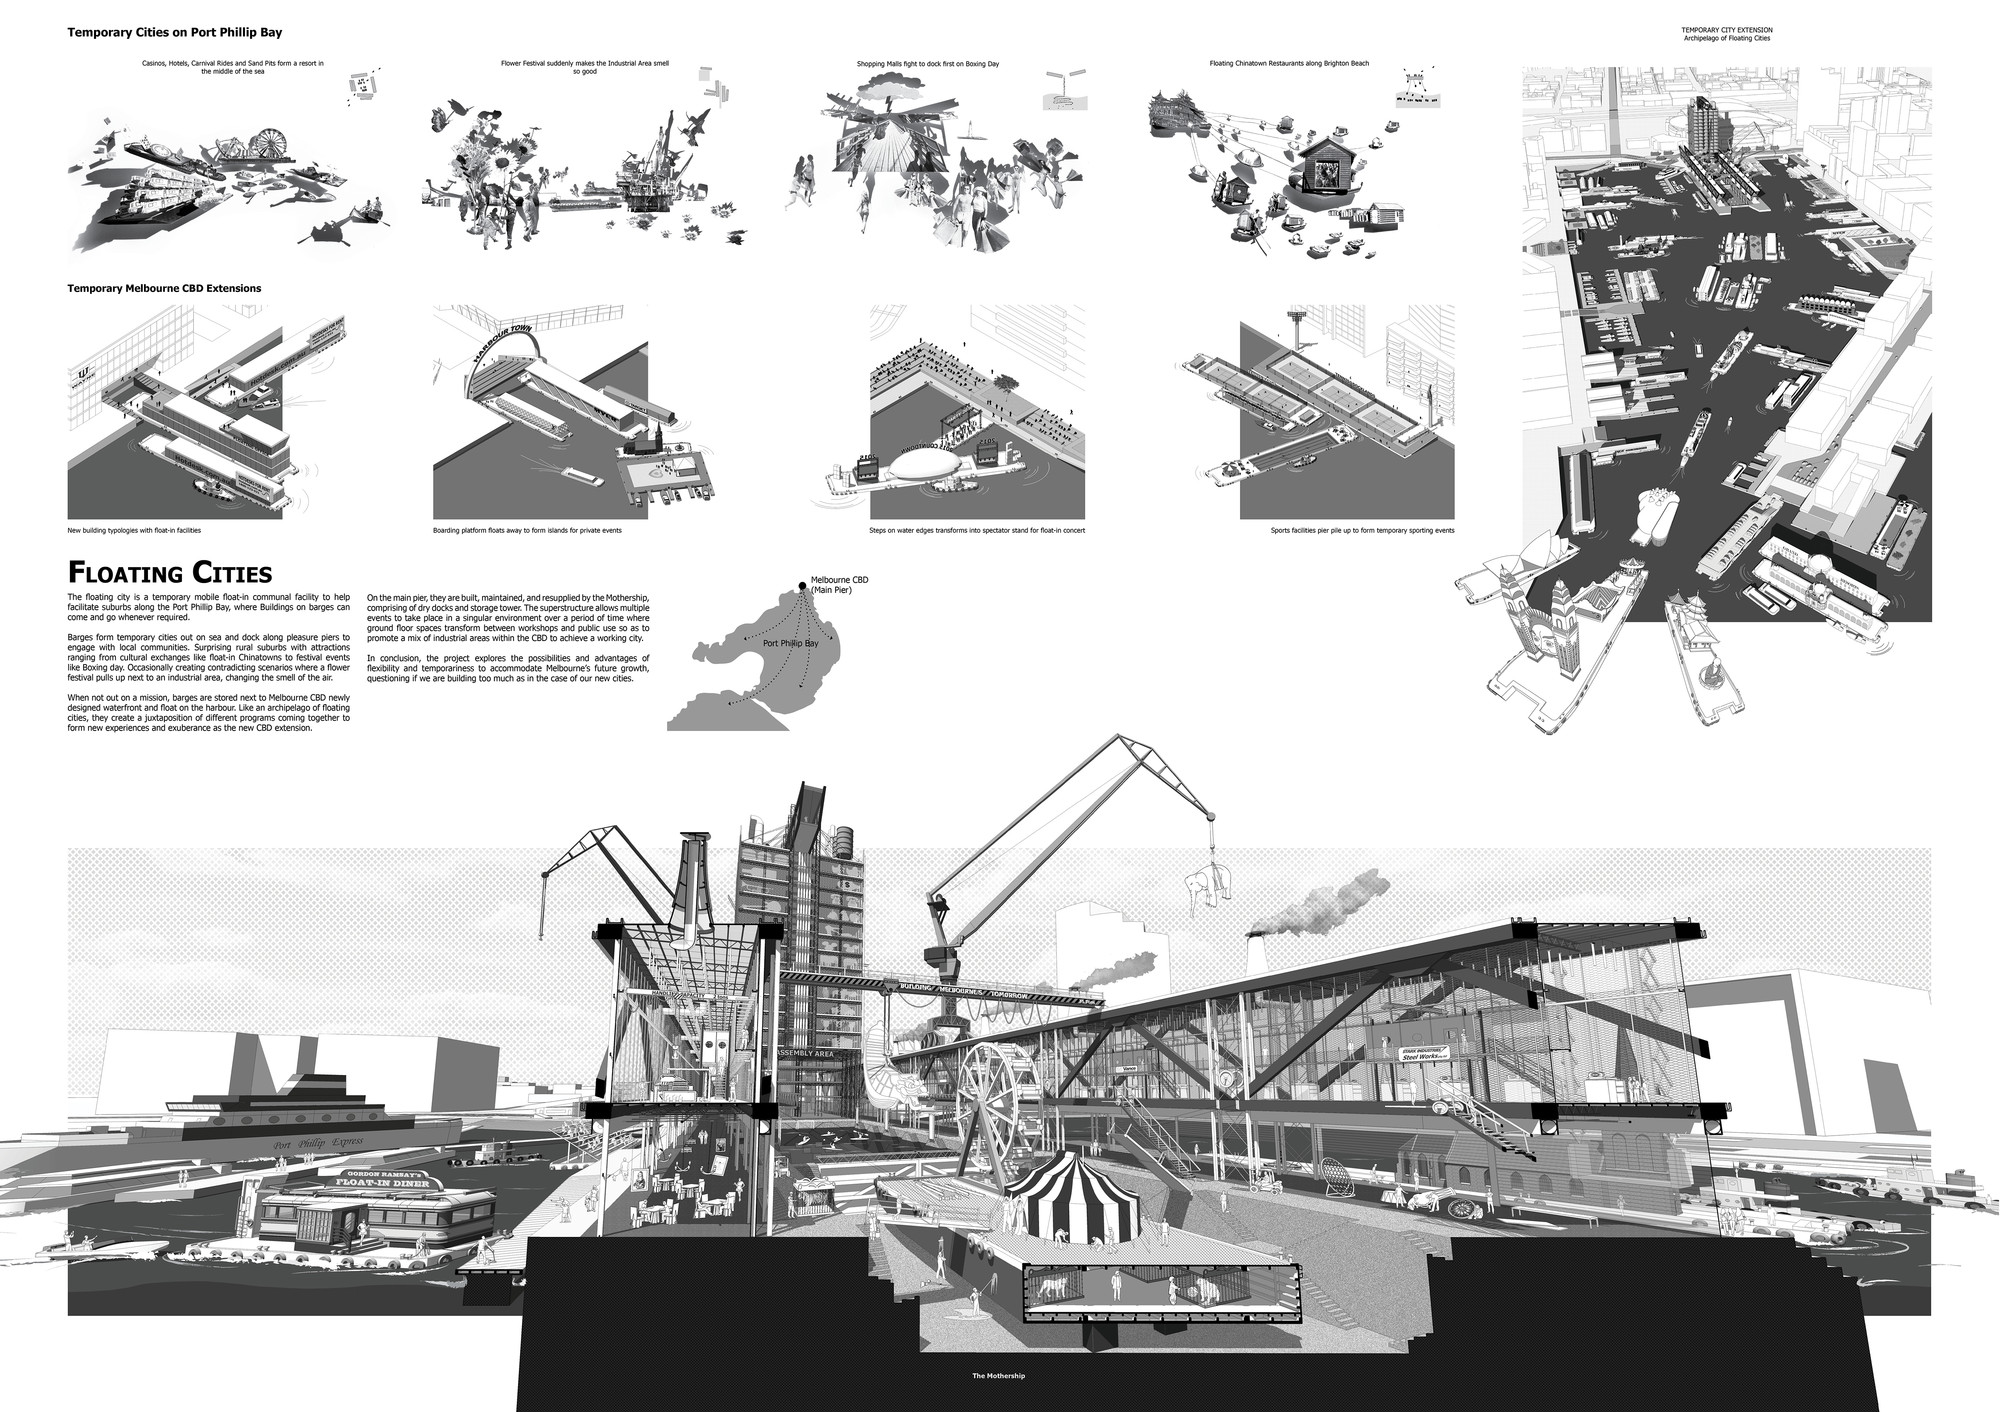 Mención Honrosa: Floating Cities. Image Courtesy of IS ARCH